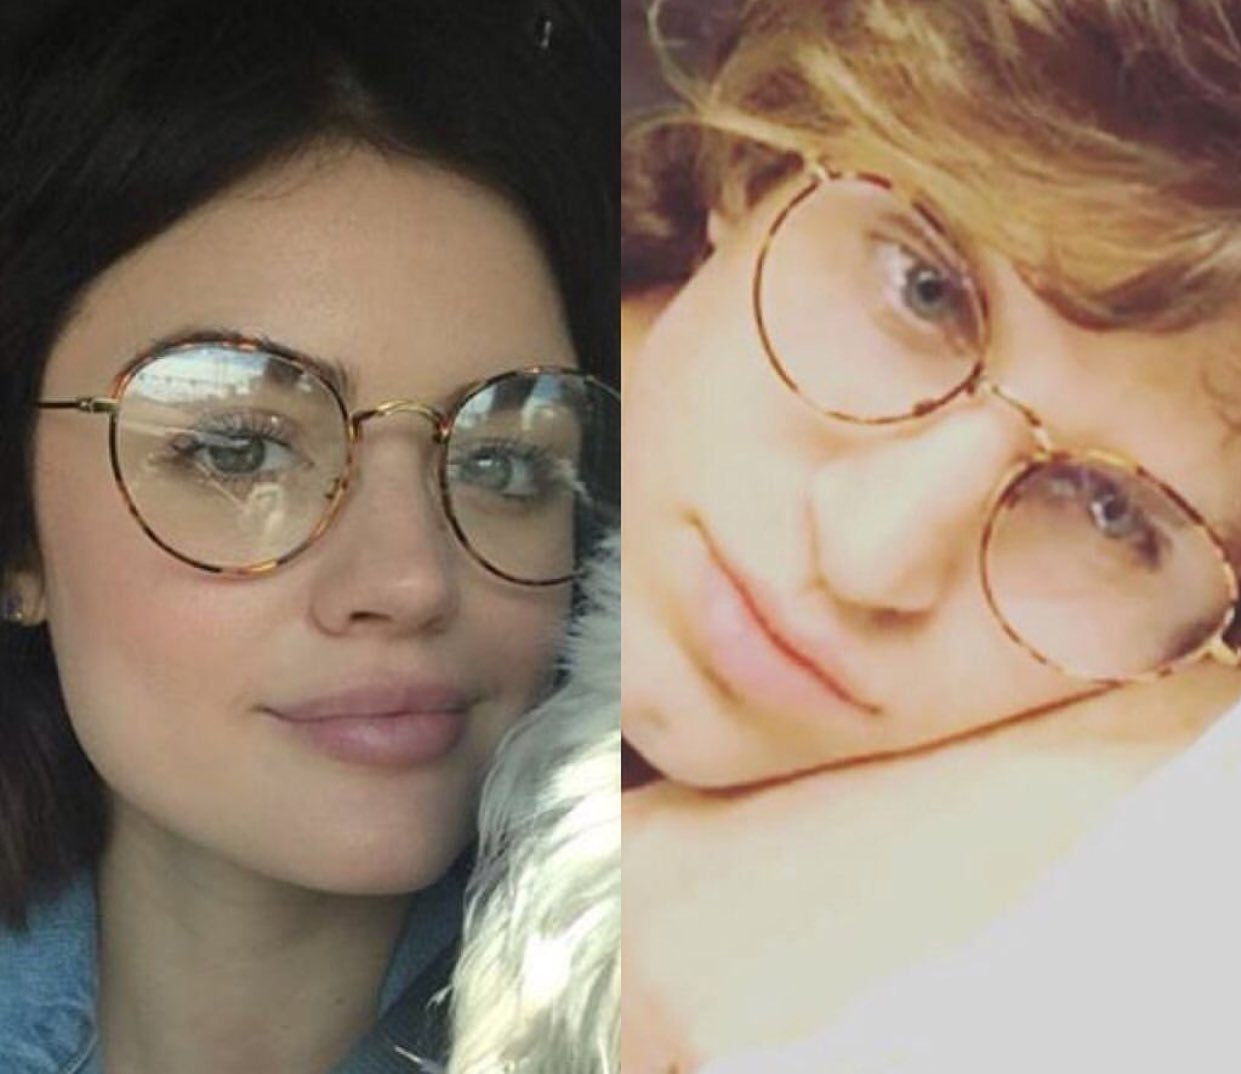 Do I have @lucyhale glasses, or does she have mine? OR ARE WE THE SAME PERSON?! https://t.co/dQvn1sJQ9e